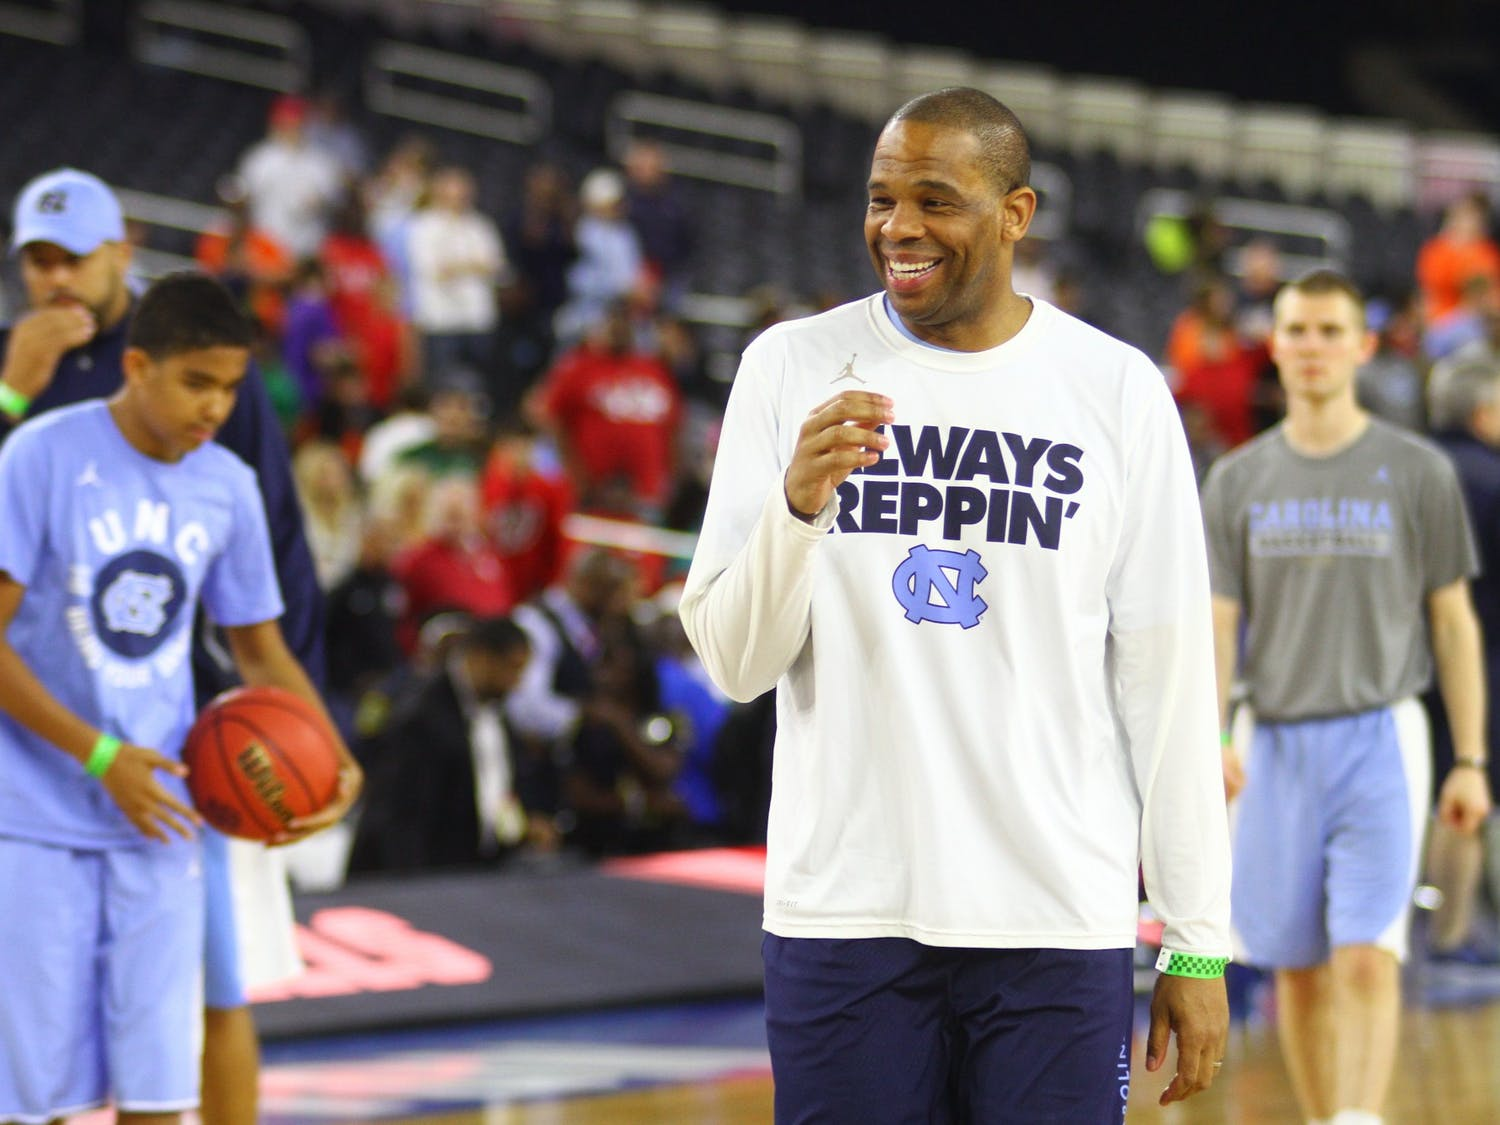 Davis had been an assistant coach for North Carolina since 2012.